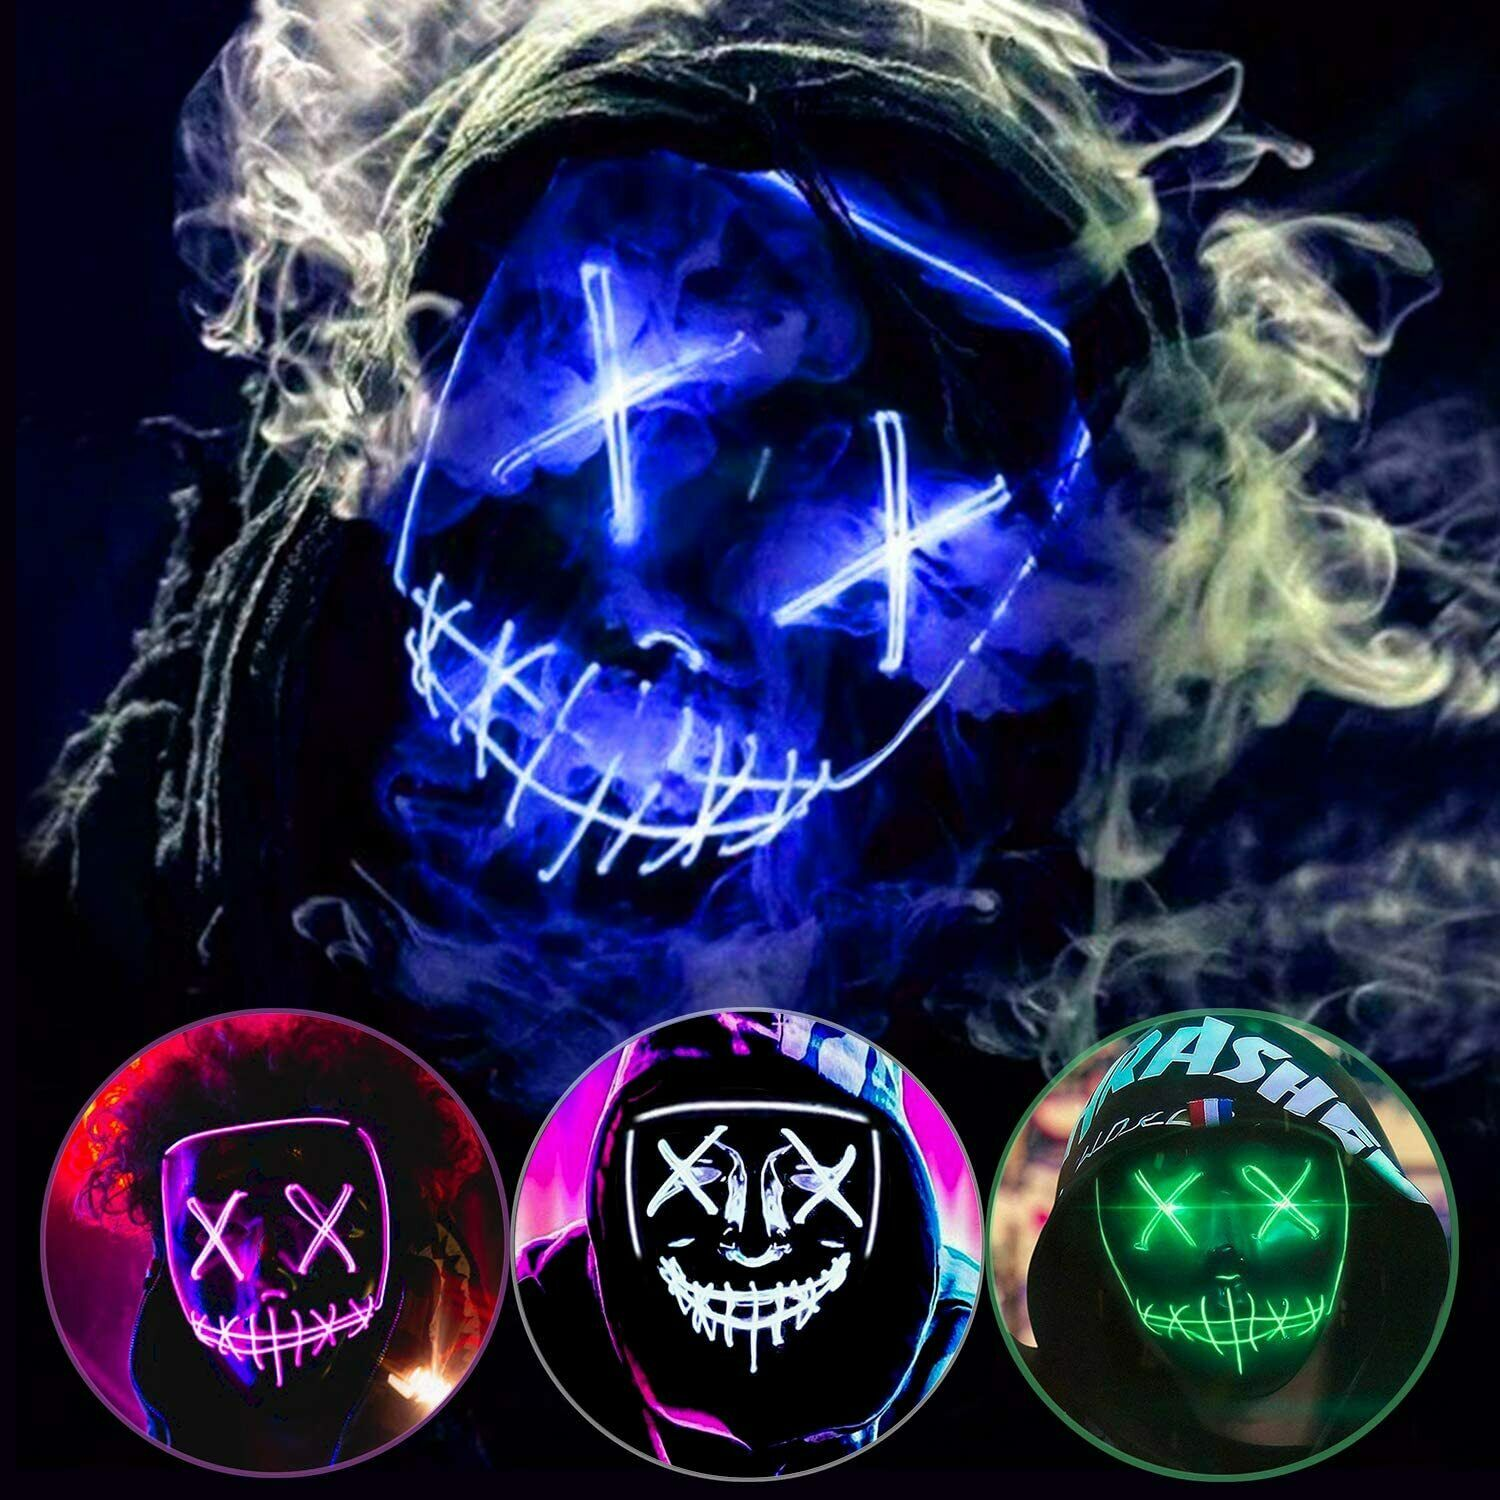 NiSotieb LED Princess Mask Halloween Costume Mask Glowing Luminous Eye Mask for Christmas Party Festival Dancing Rave Masquerade Costumes (Blue)